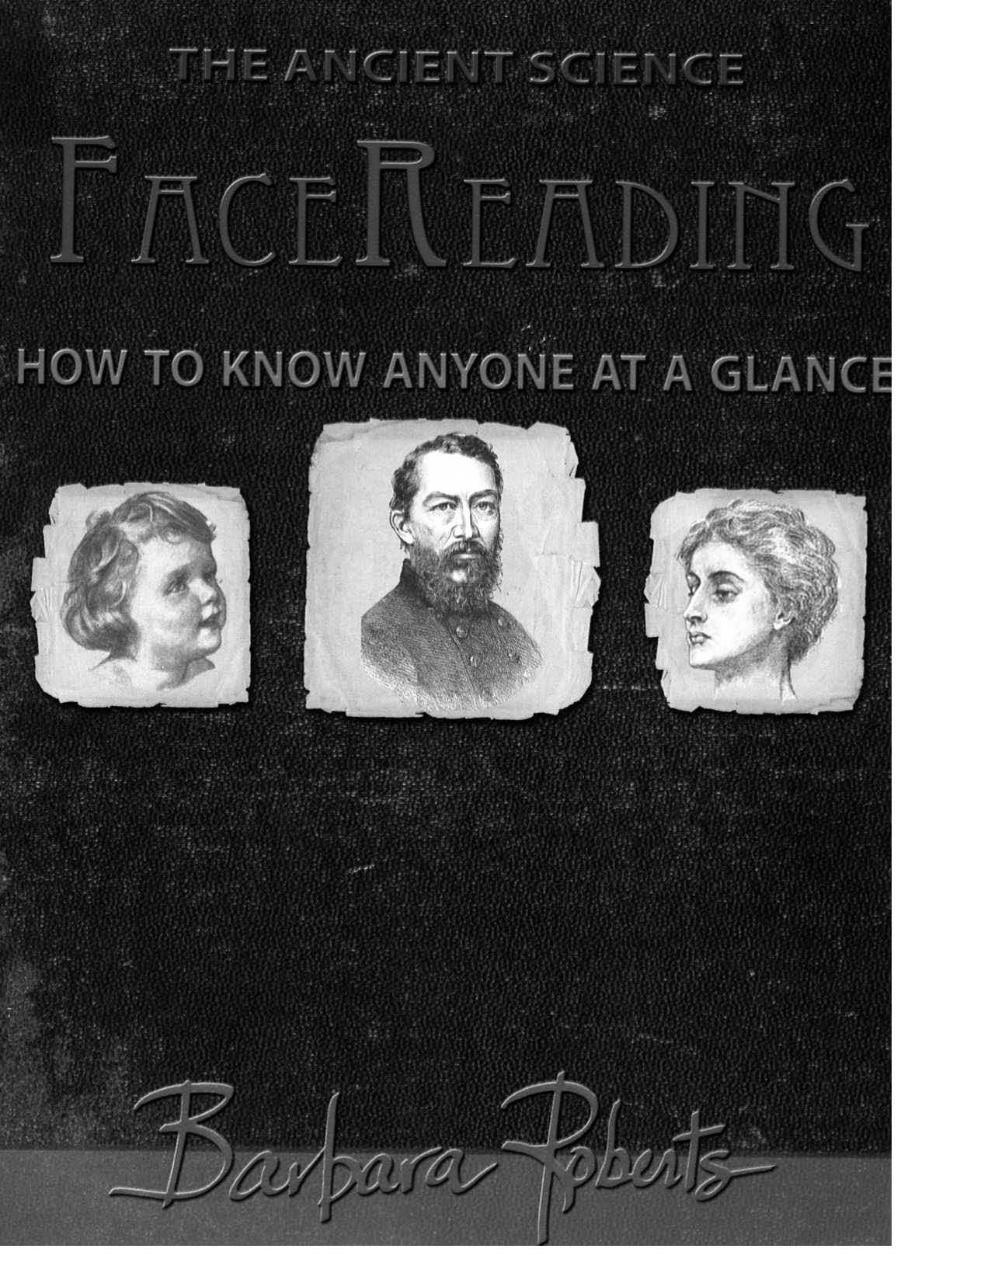 barbara roberts face reading how to know anyone fichier pdf